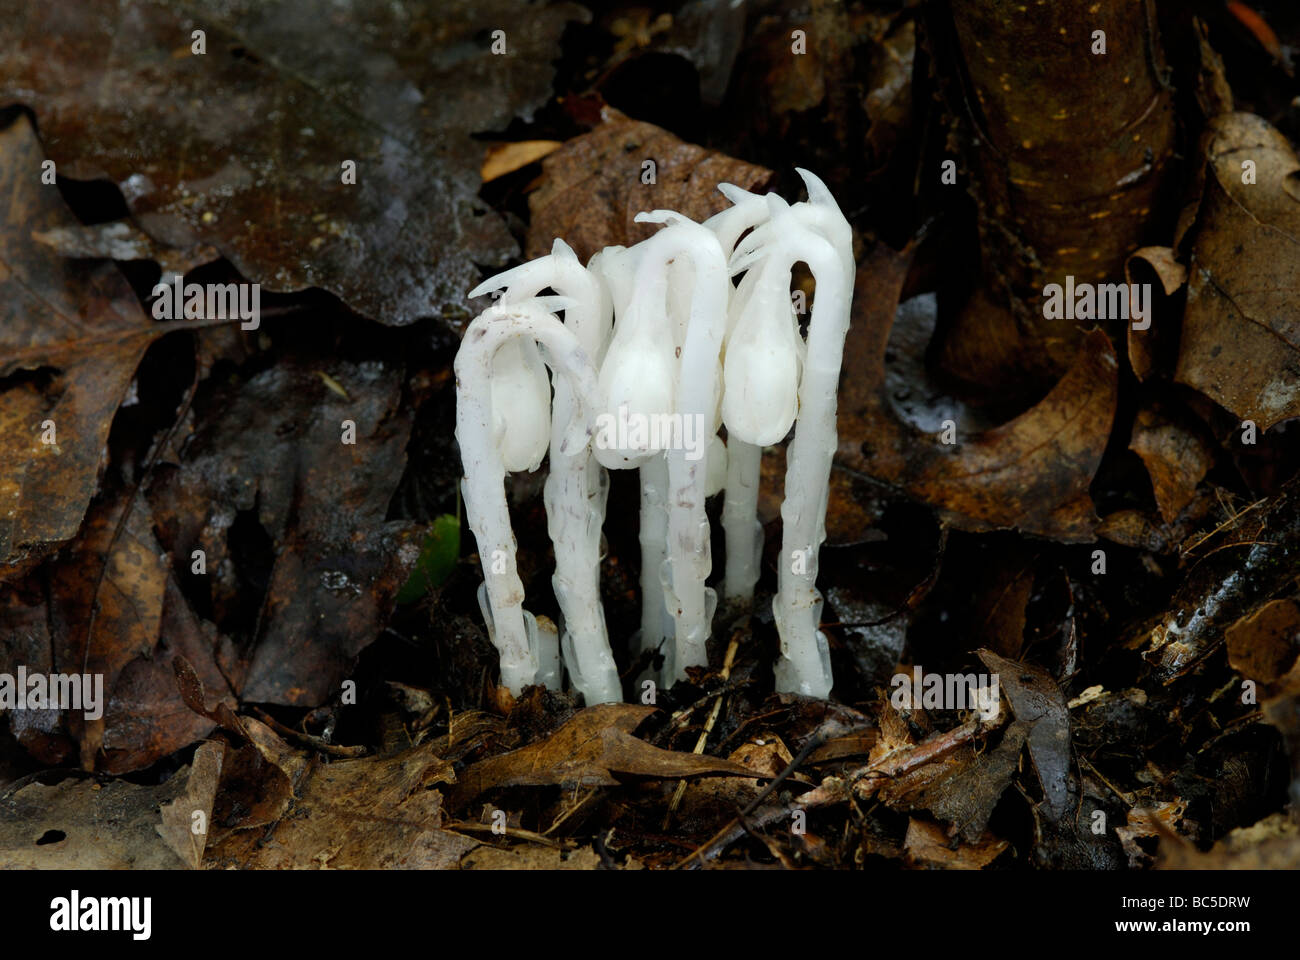 Indian pipe, Monotropa uniflora, an unusual non-photosynthetic, parasitic flowering plant. - Stock Image